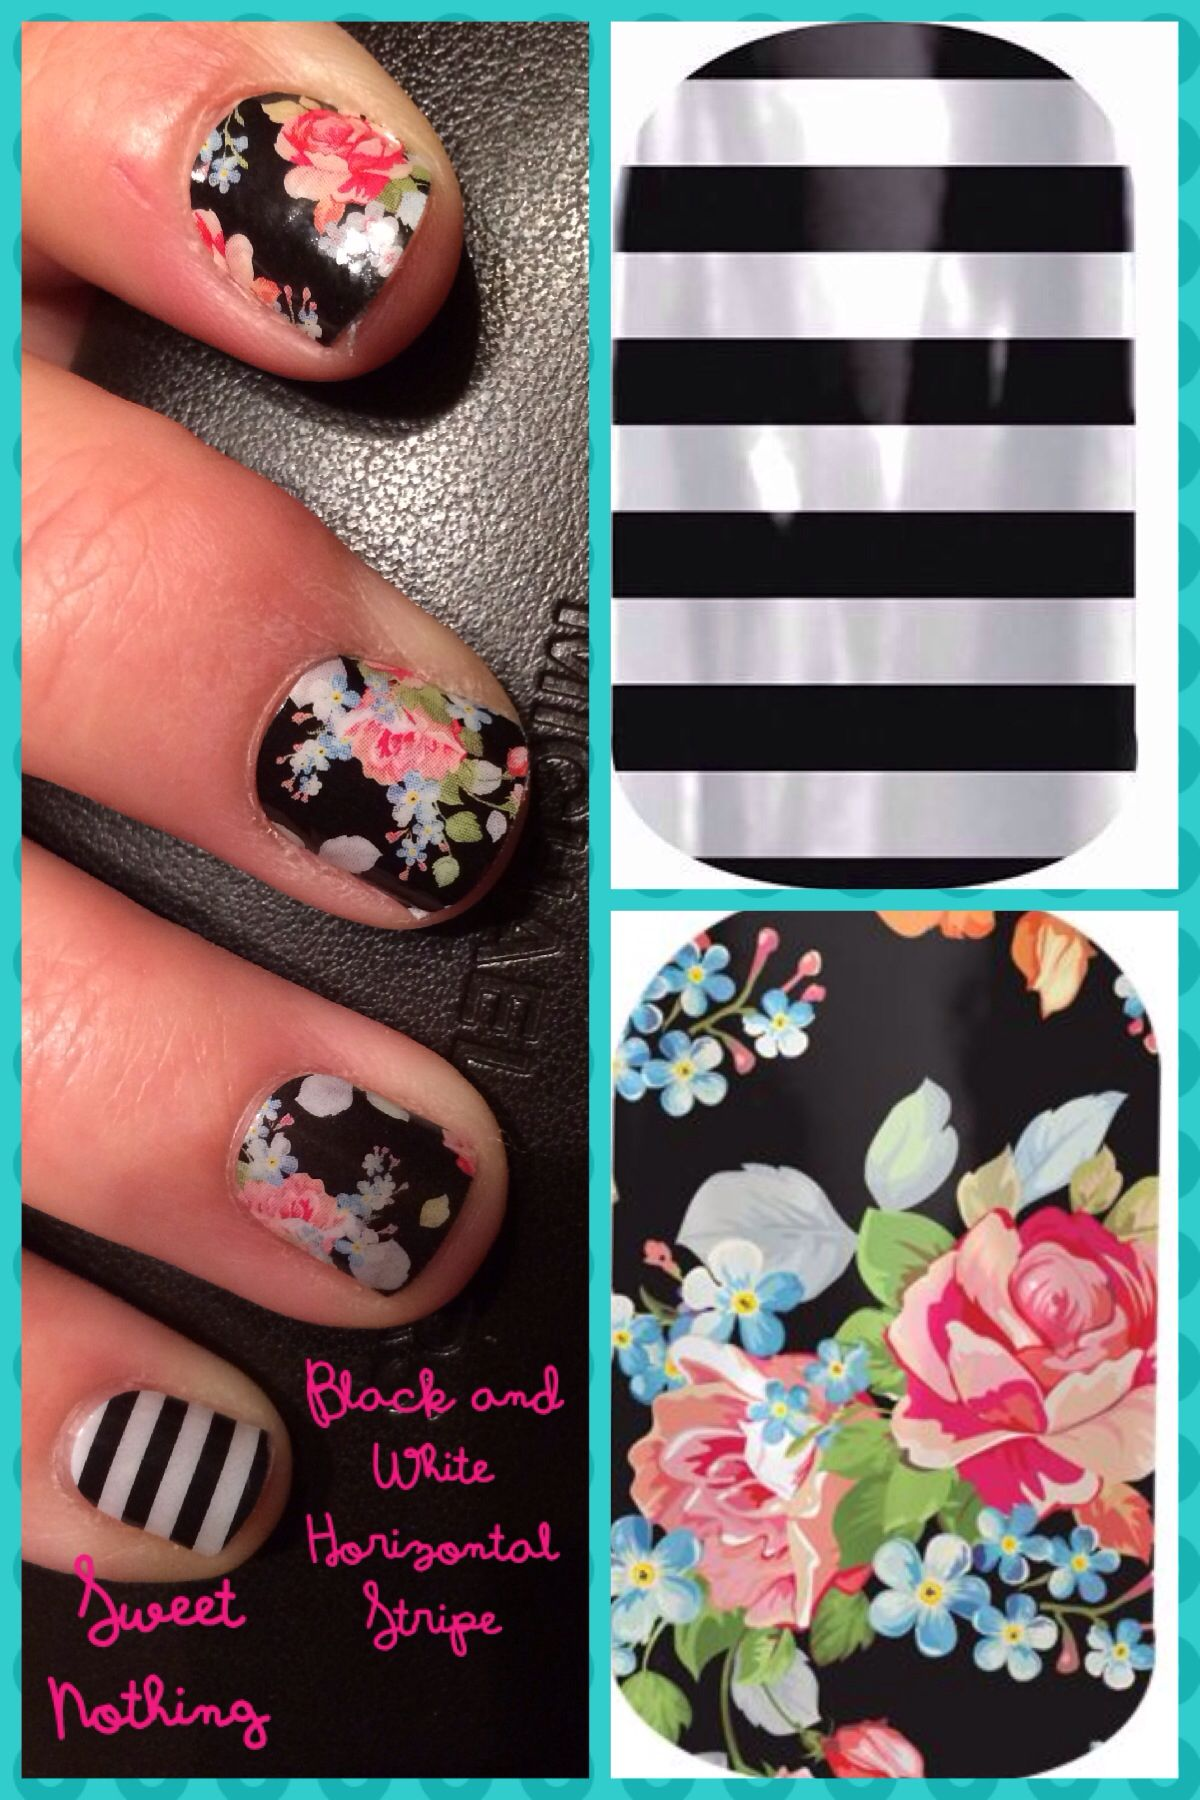 Jamberry manicure: Sweet Nothing with Black and White Horizontal ...